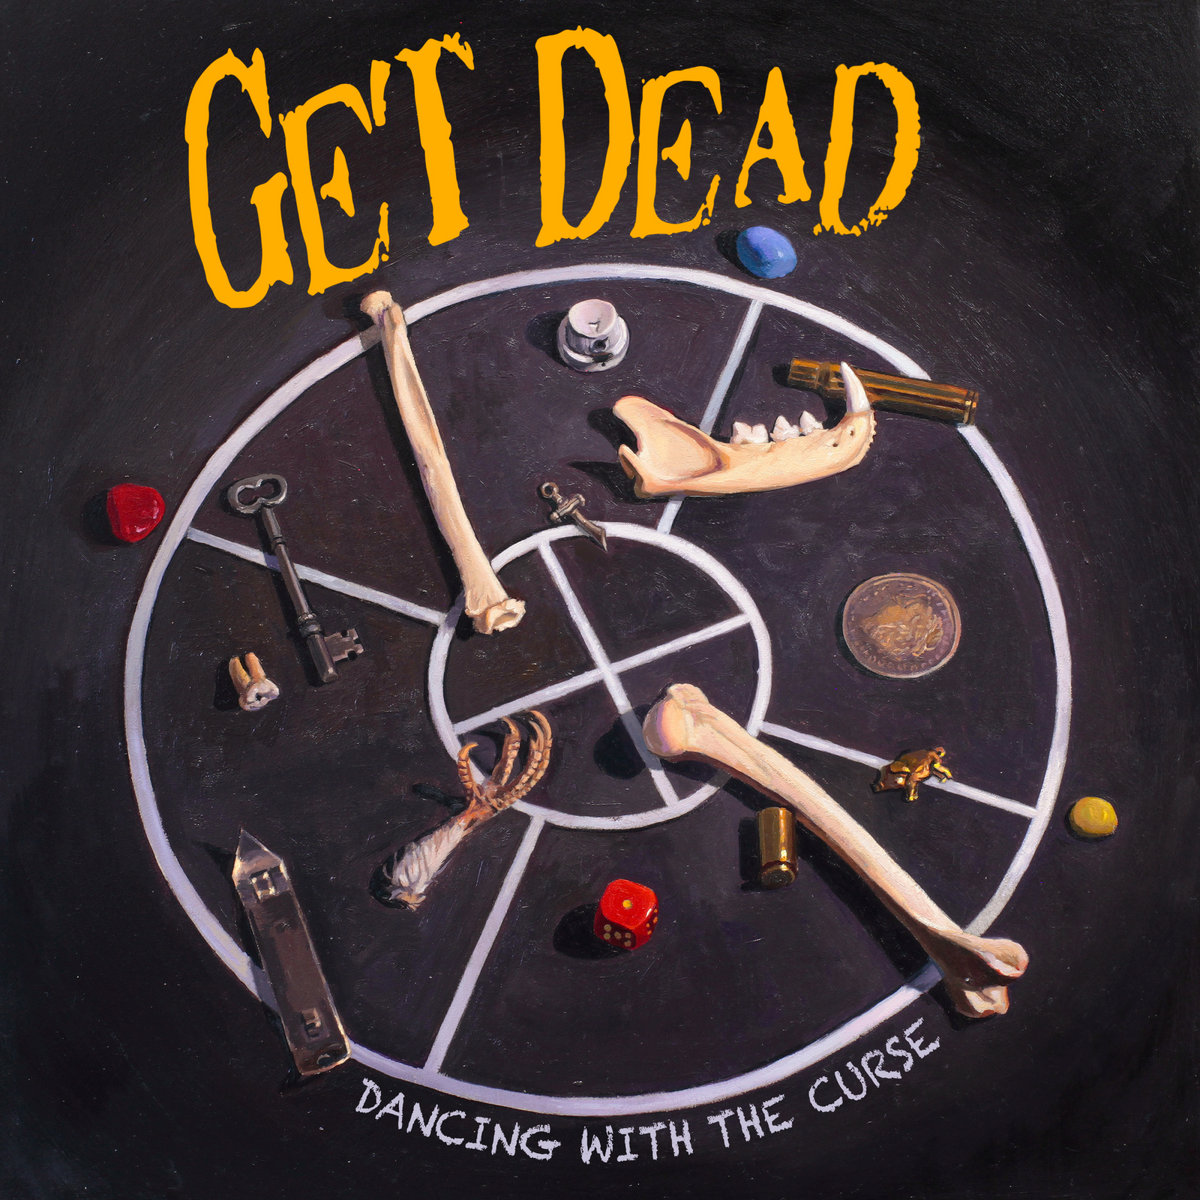 Upcoming Releases - Get Dead - Dancing With The Curse | Punk Rock Theory